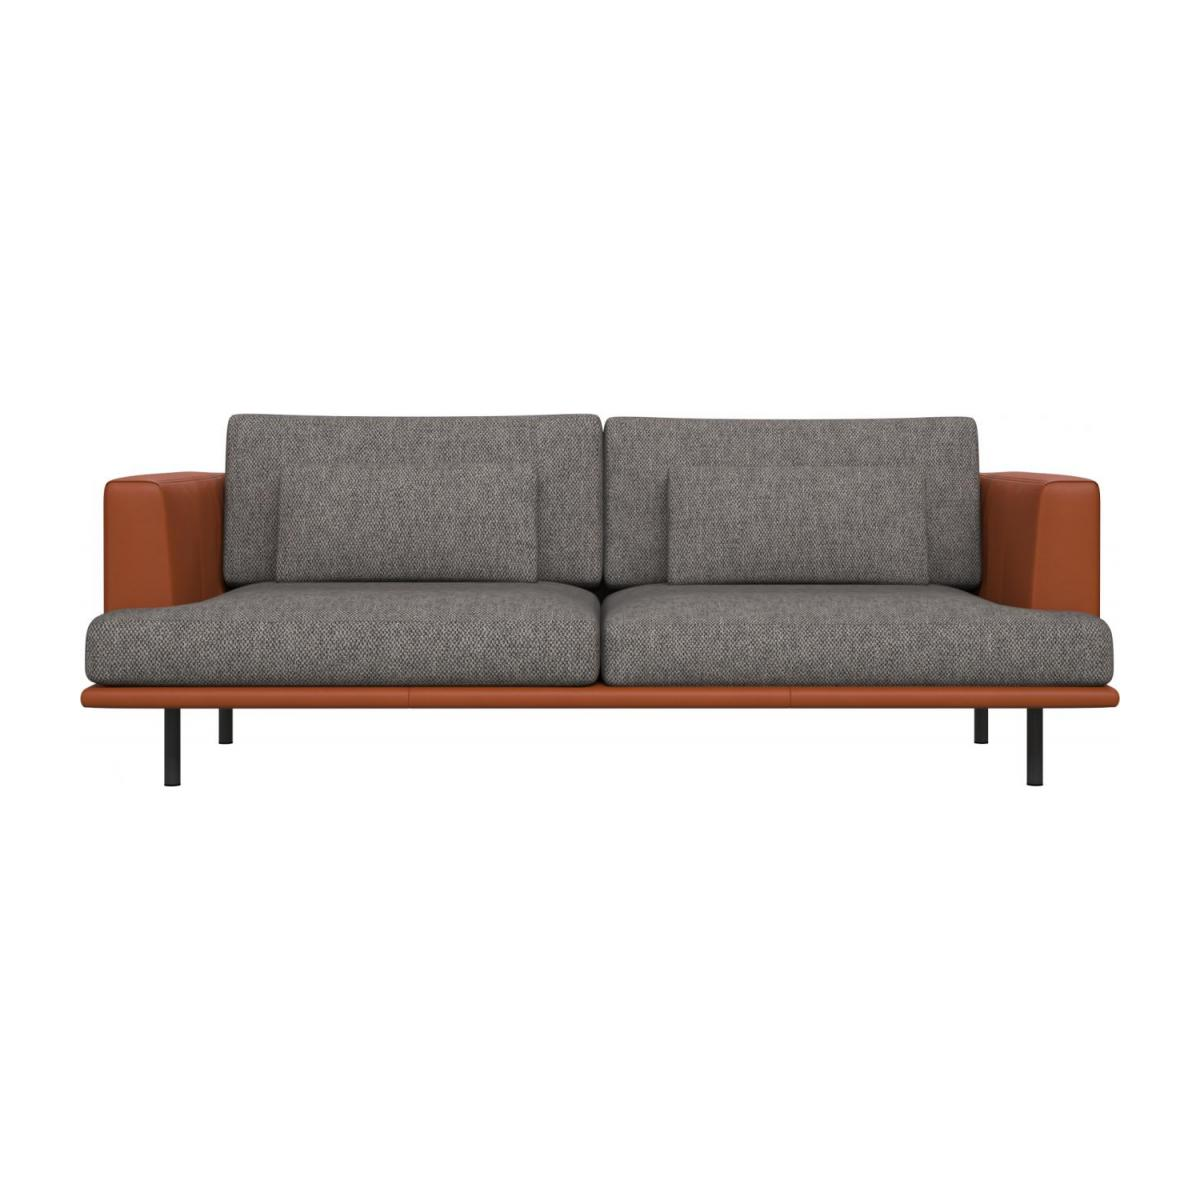 3 seater sofa in Bellagio fabric, night black with base and armrests in brown leather n°2